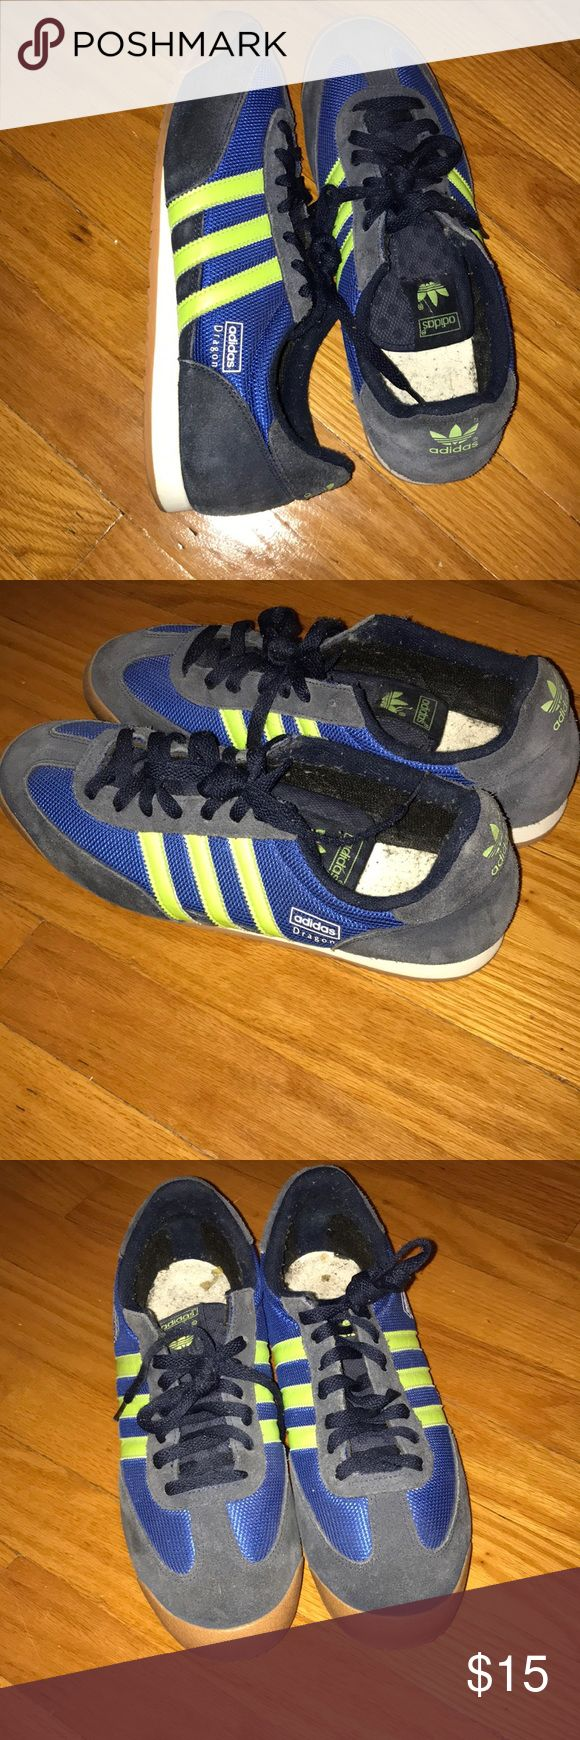 Men's Adidas Dragon Sneakers Clean sneakers without insole. Green stripe detail and peanut butter leather toe. Great shoe for summer.   Men's size 10.5 adidas Shoes Sneakers